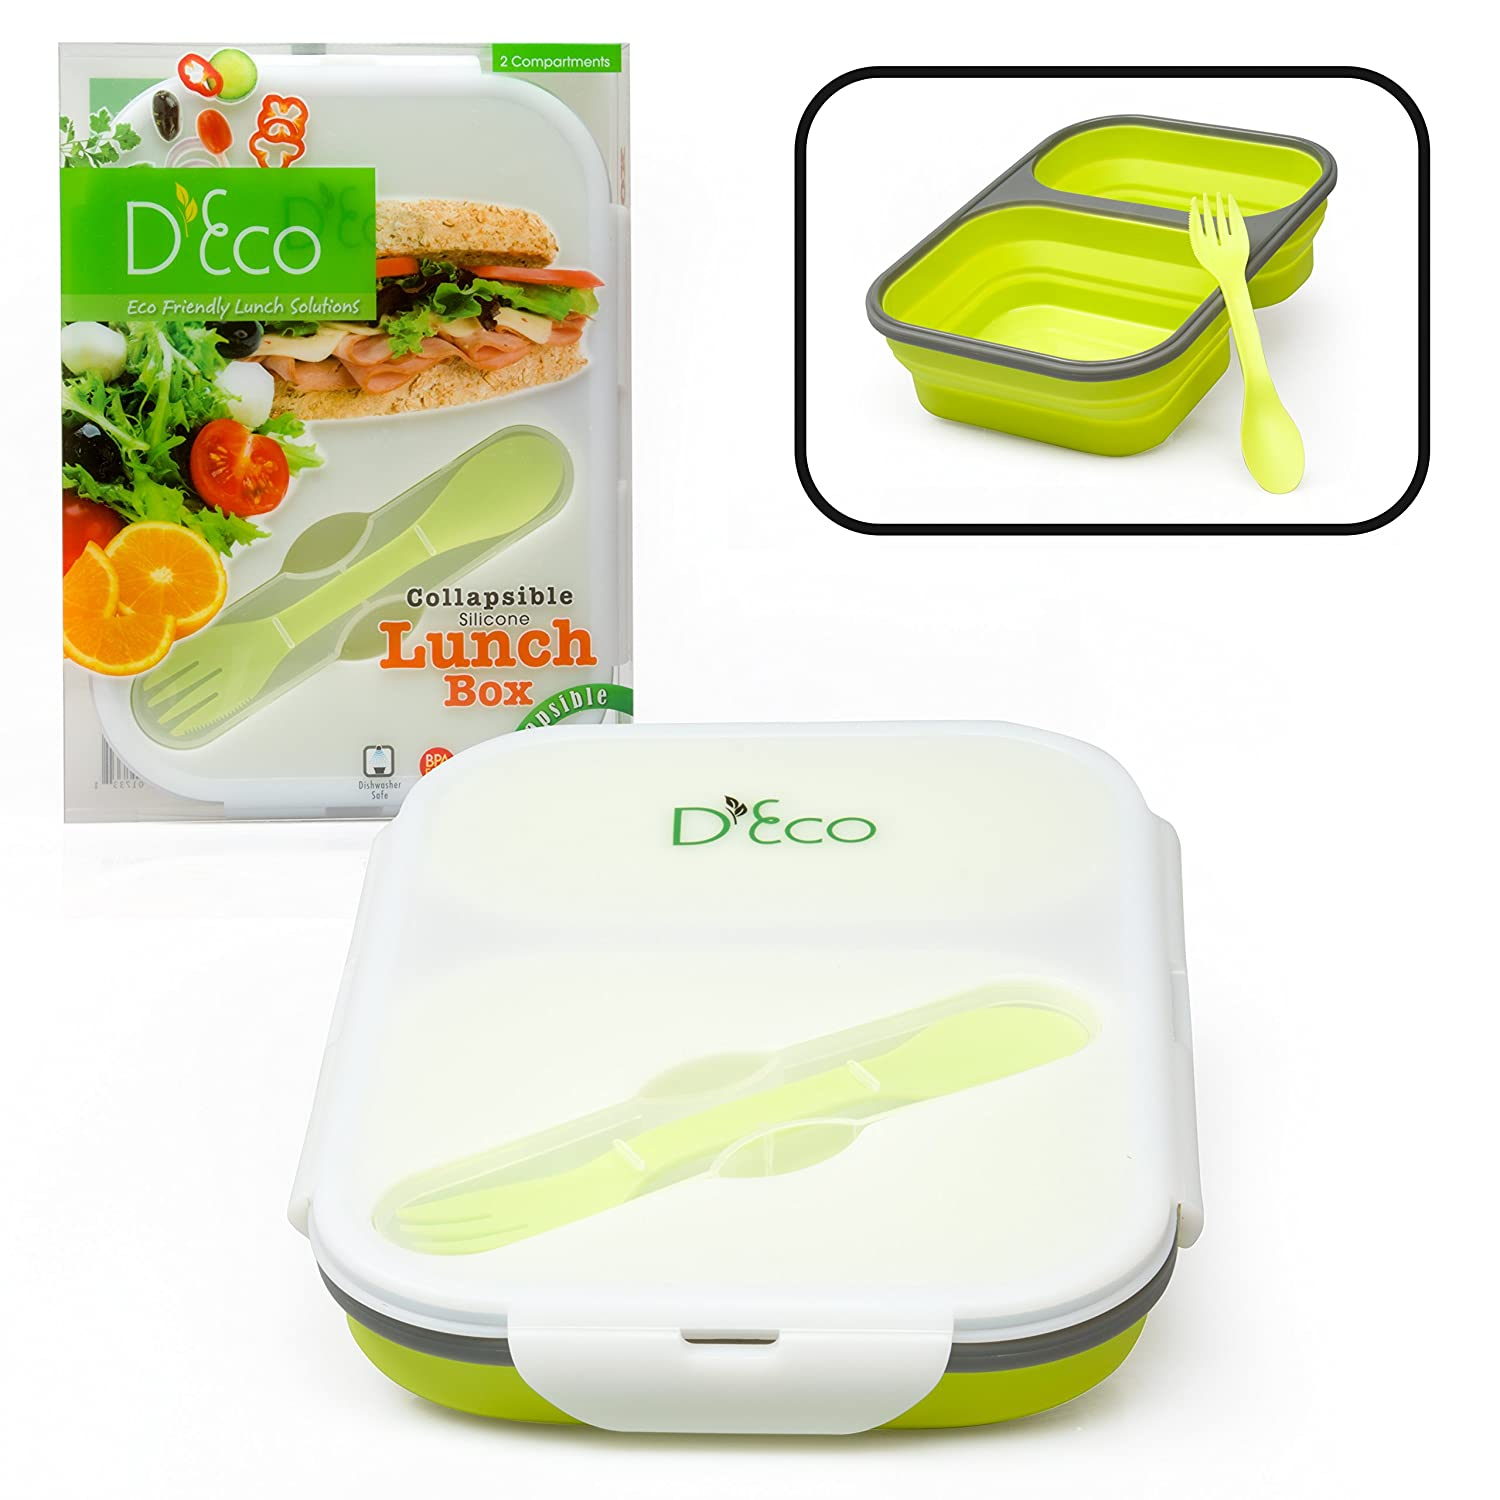 Collapsible Silicone Lunch Box with Two Compartments